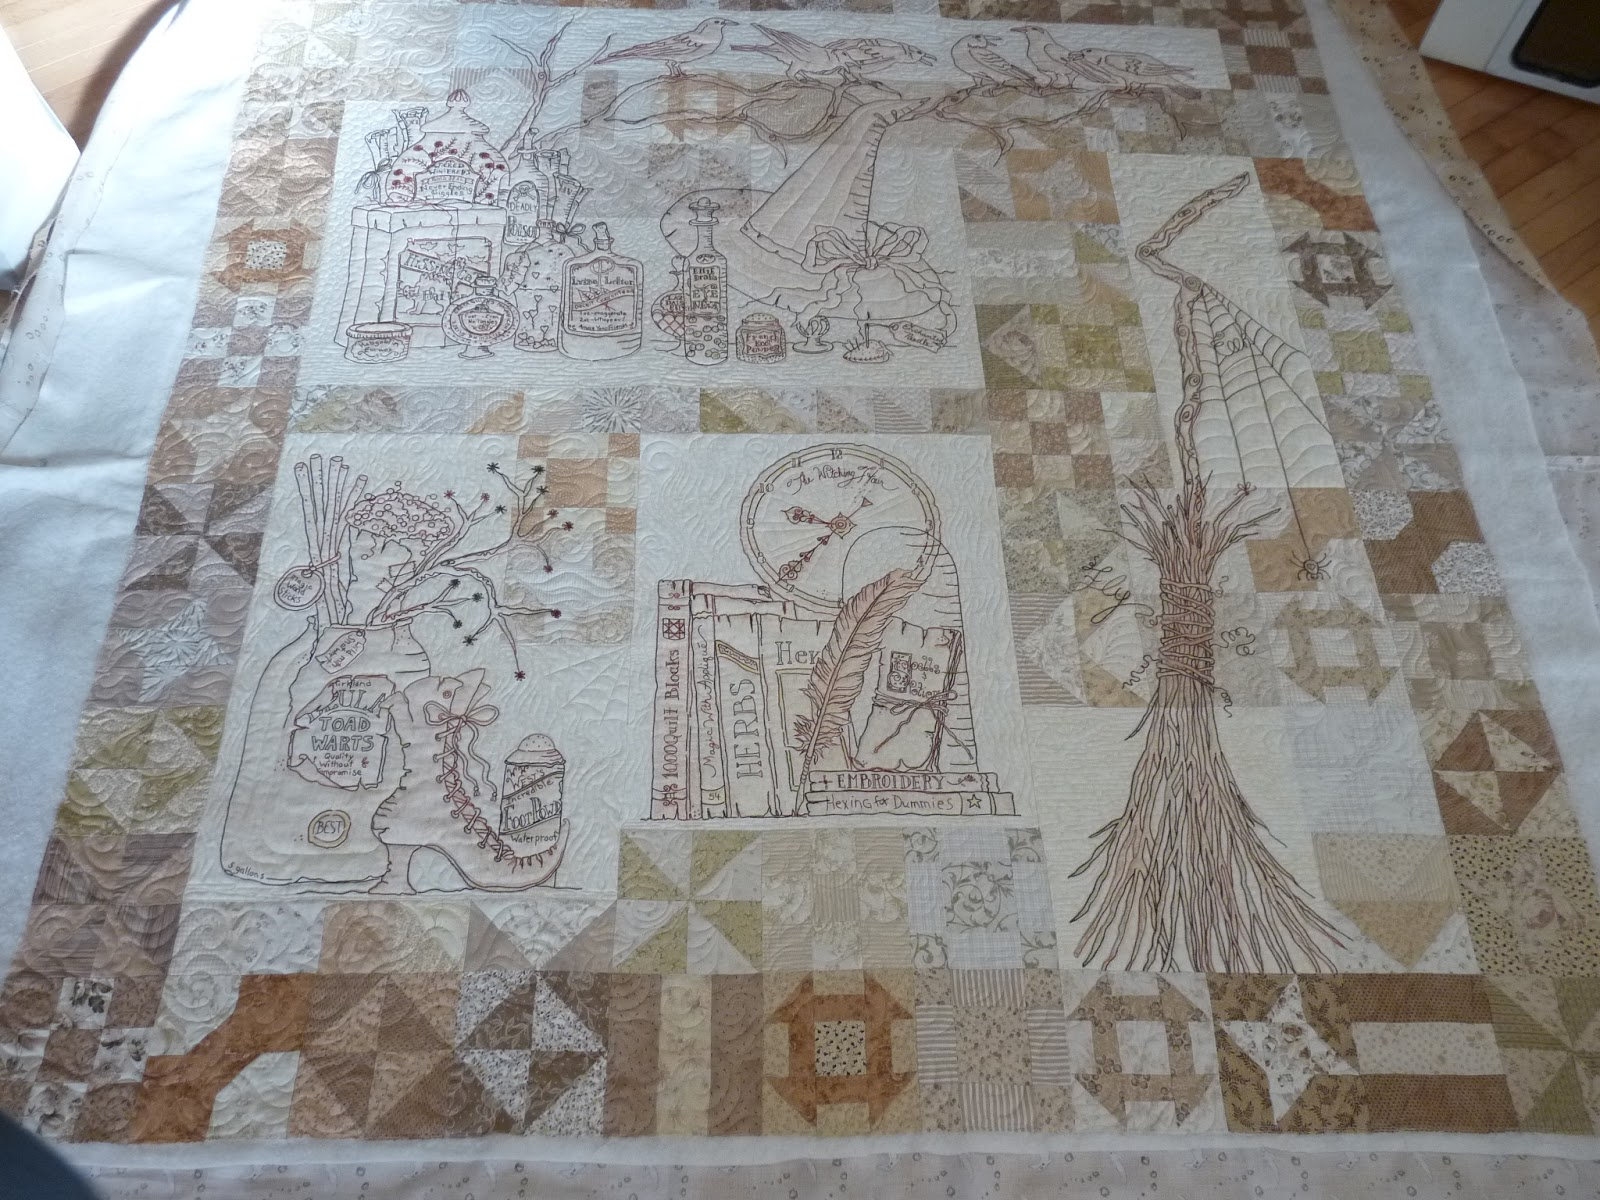 Sewing & Quilt Gallery: Calendula Embroidery Quilt : crabapple hill quilts - Adamdwight.com